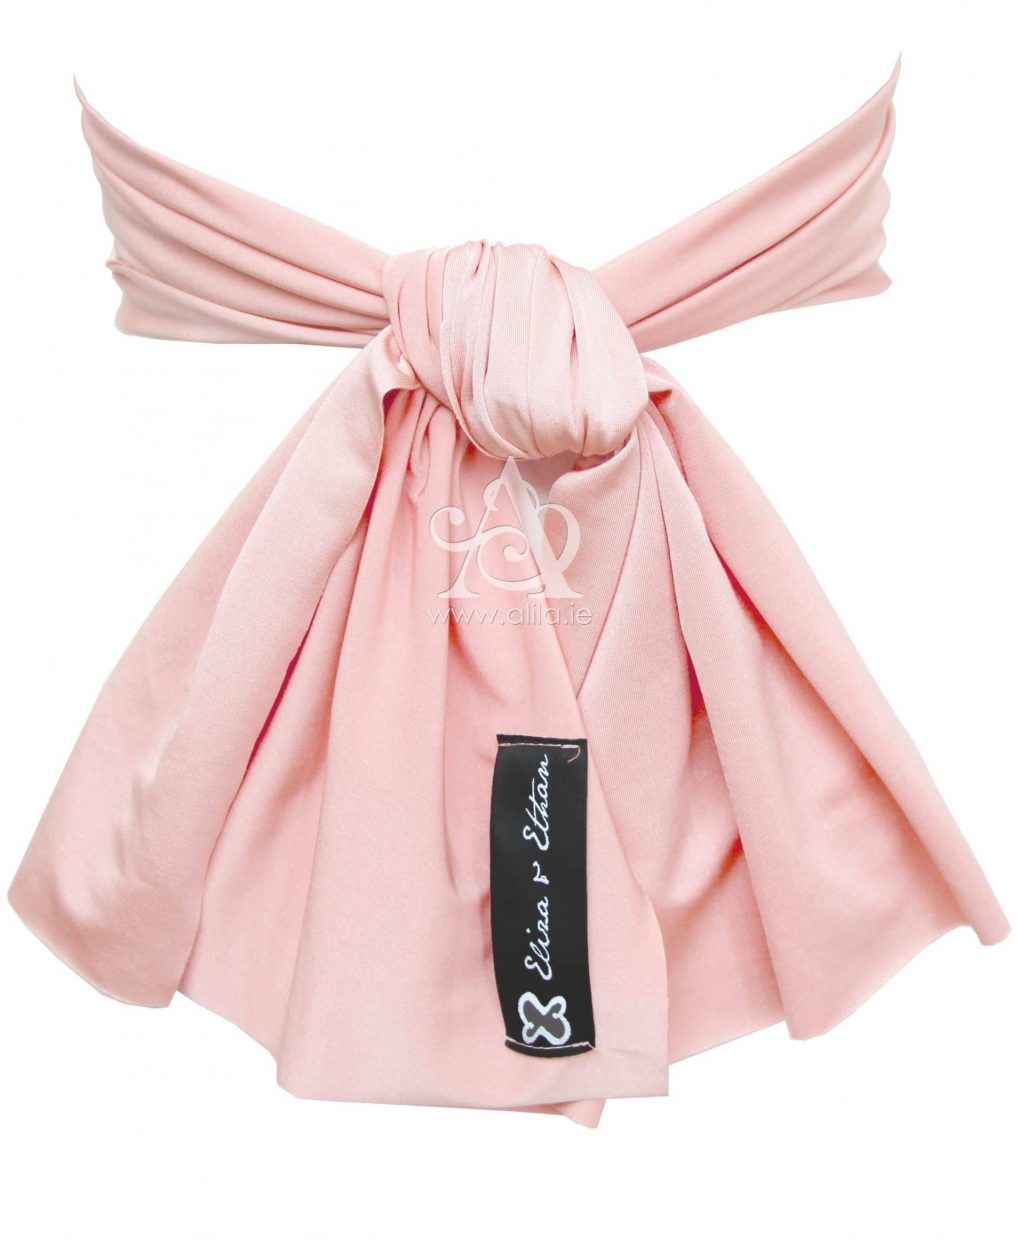 Eliza & Ethan Dusty Rose Flower Girl Sash Alila